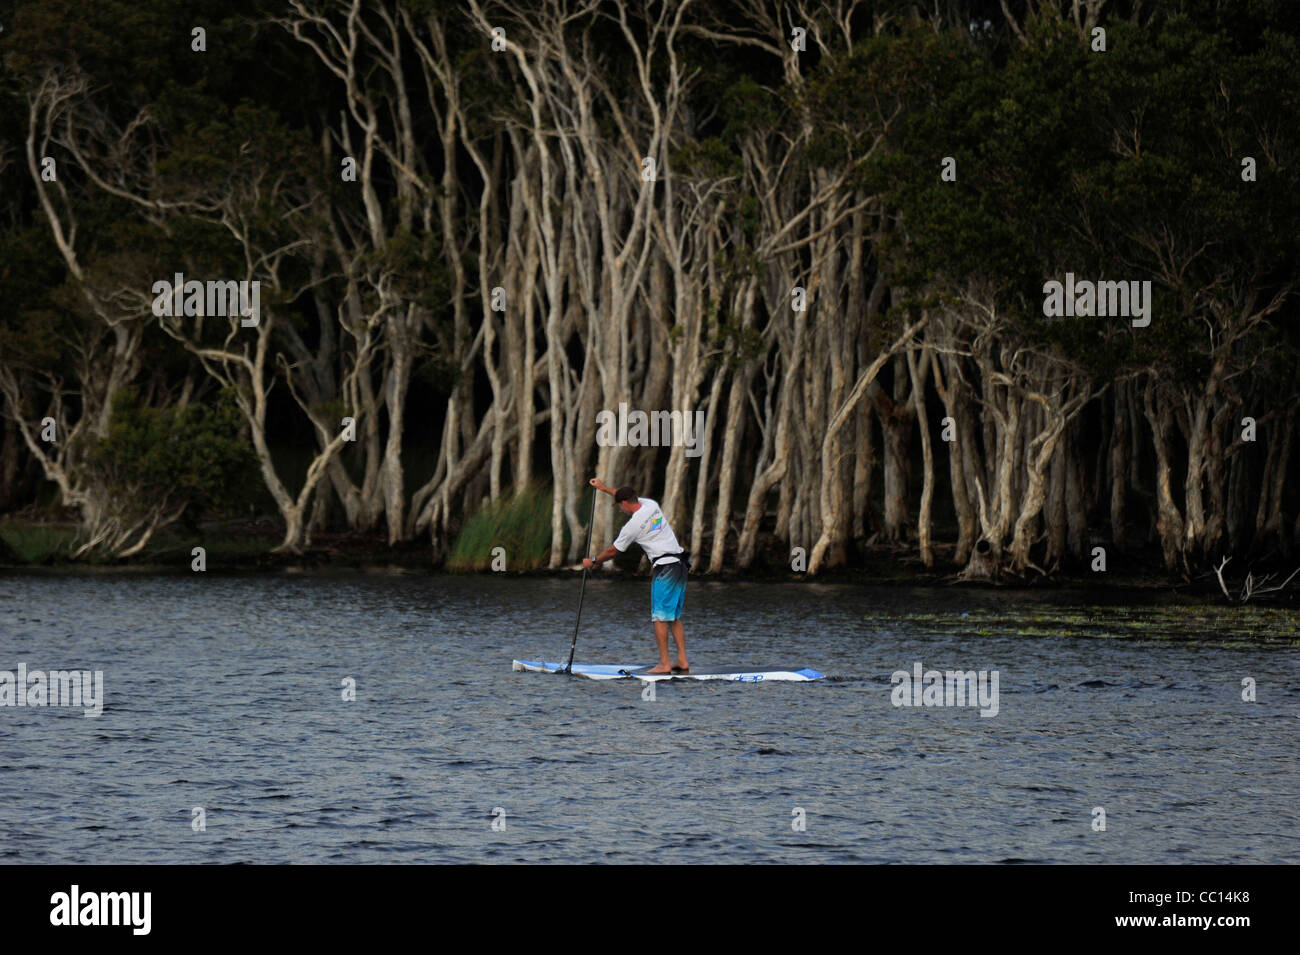 A man paddles a paddle board on a freshwater lake with Paperbark forest behind. Stock Photo